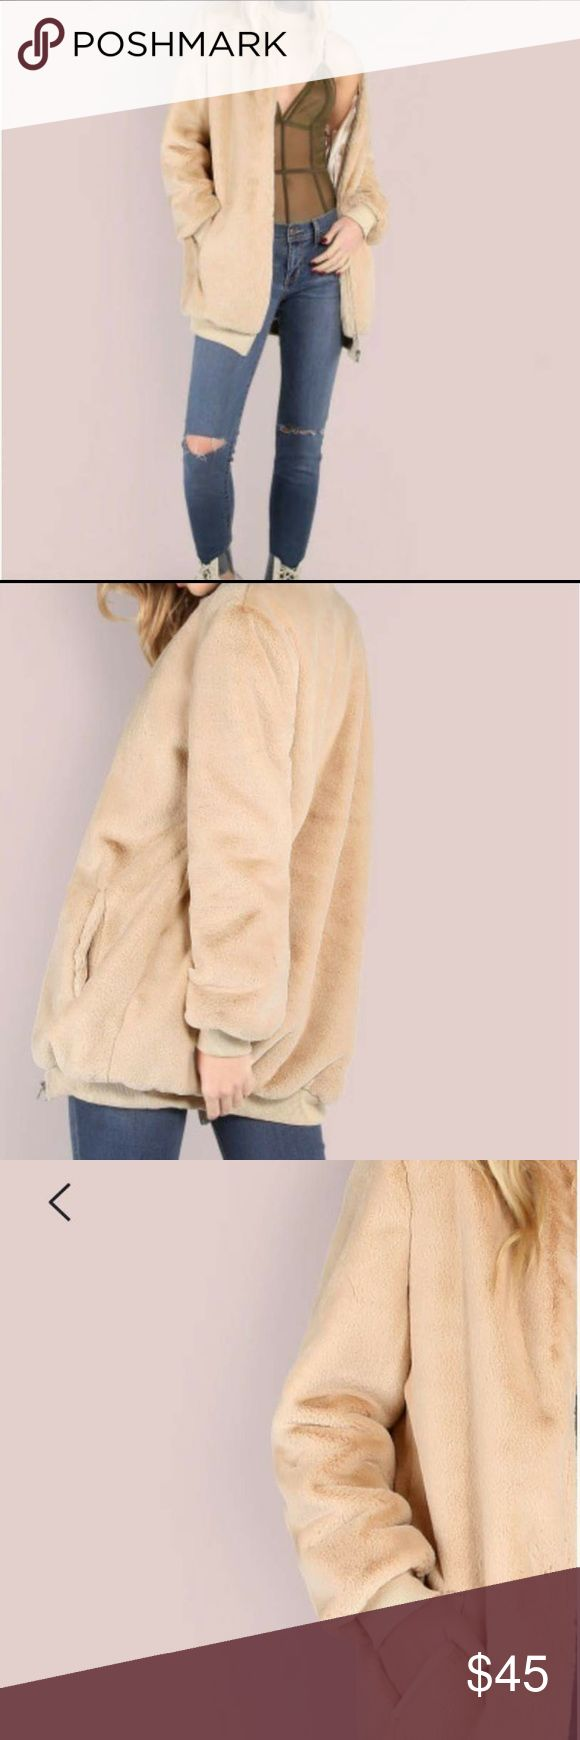 Tan Fuzzy Coat | Bomber Jacket Brand new, didn't fit me. Similar to Brandy Melville fuzzy coat in the last picture. The last picture is just for comparison, it is not for sale. The coat is really soft. Has No Brand. Fashion Nova Jackets & Coats Utility Jackets